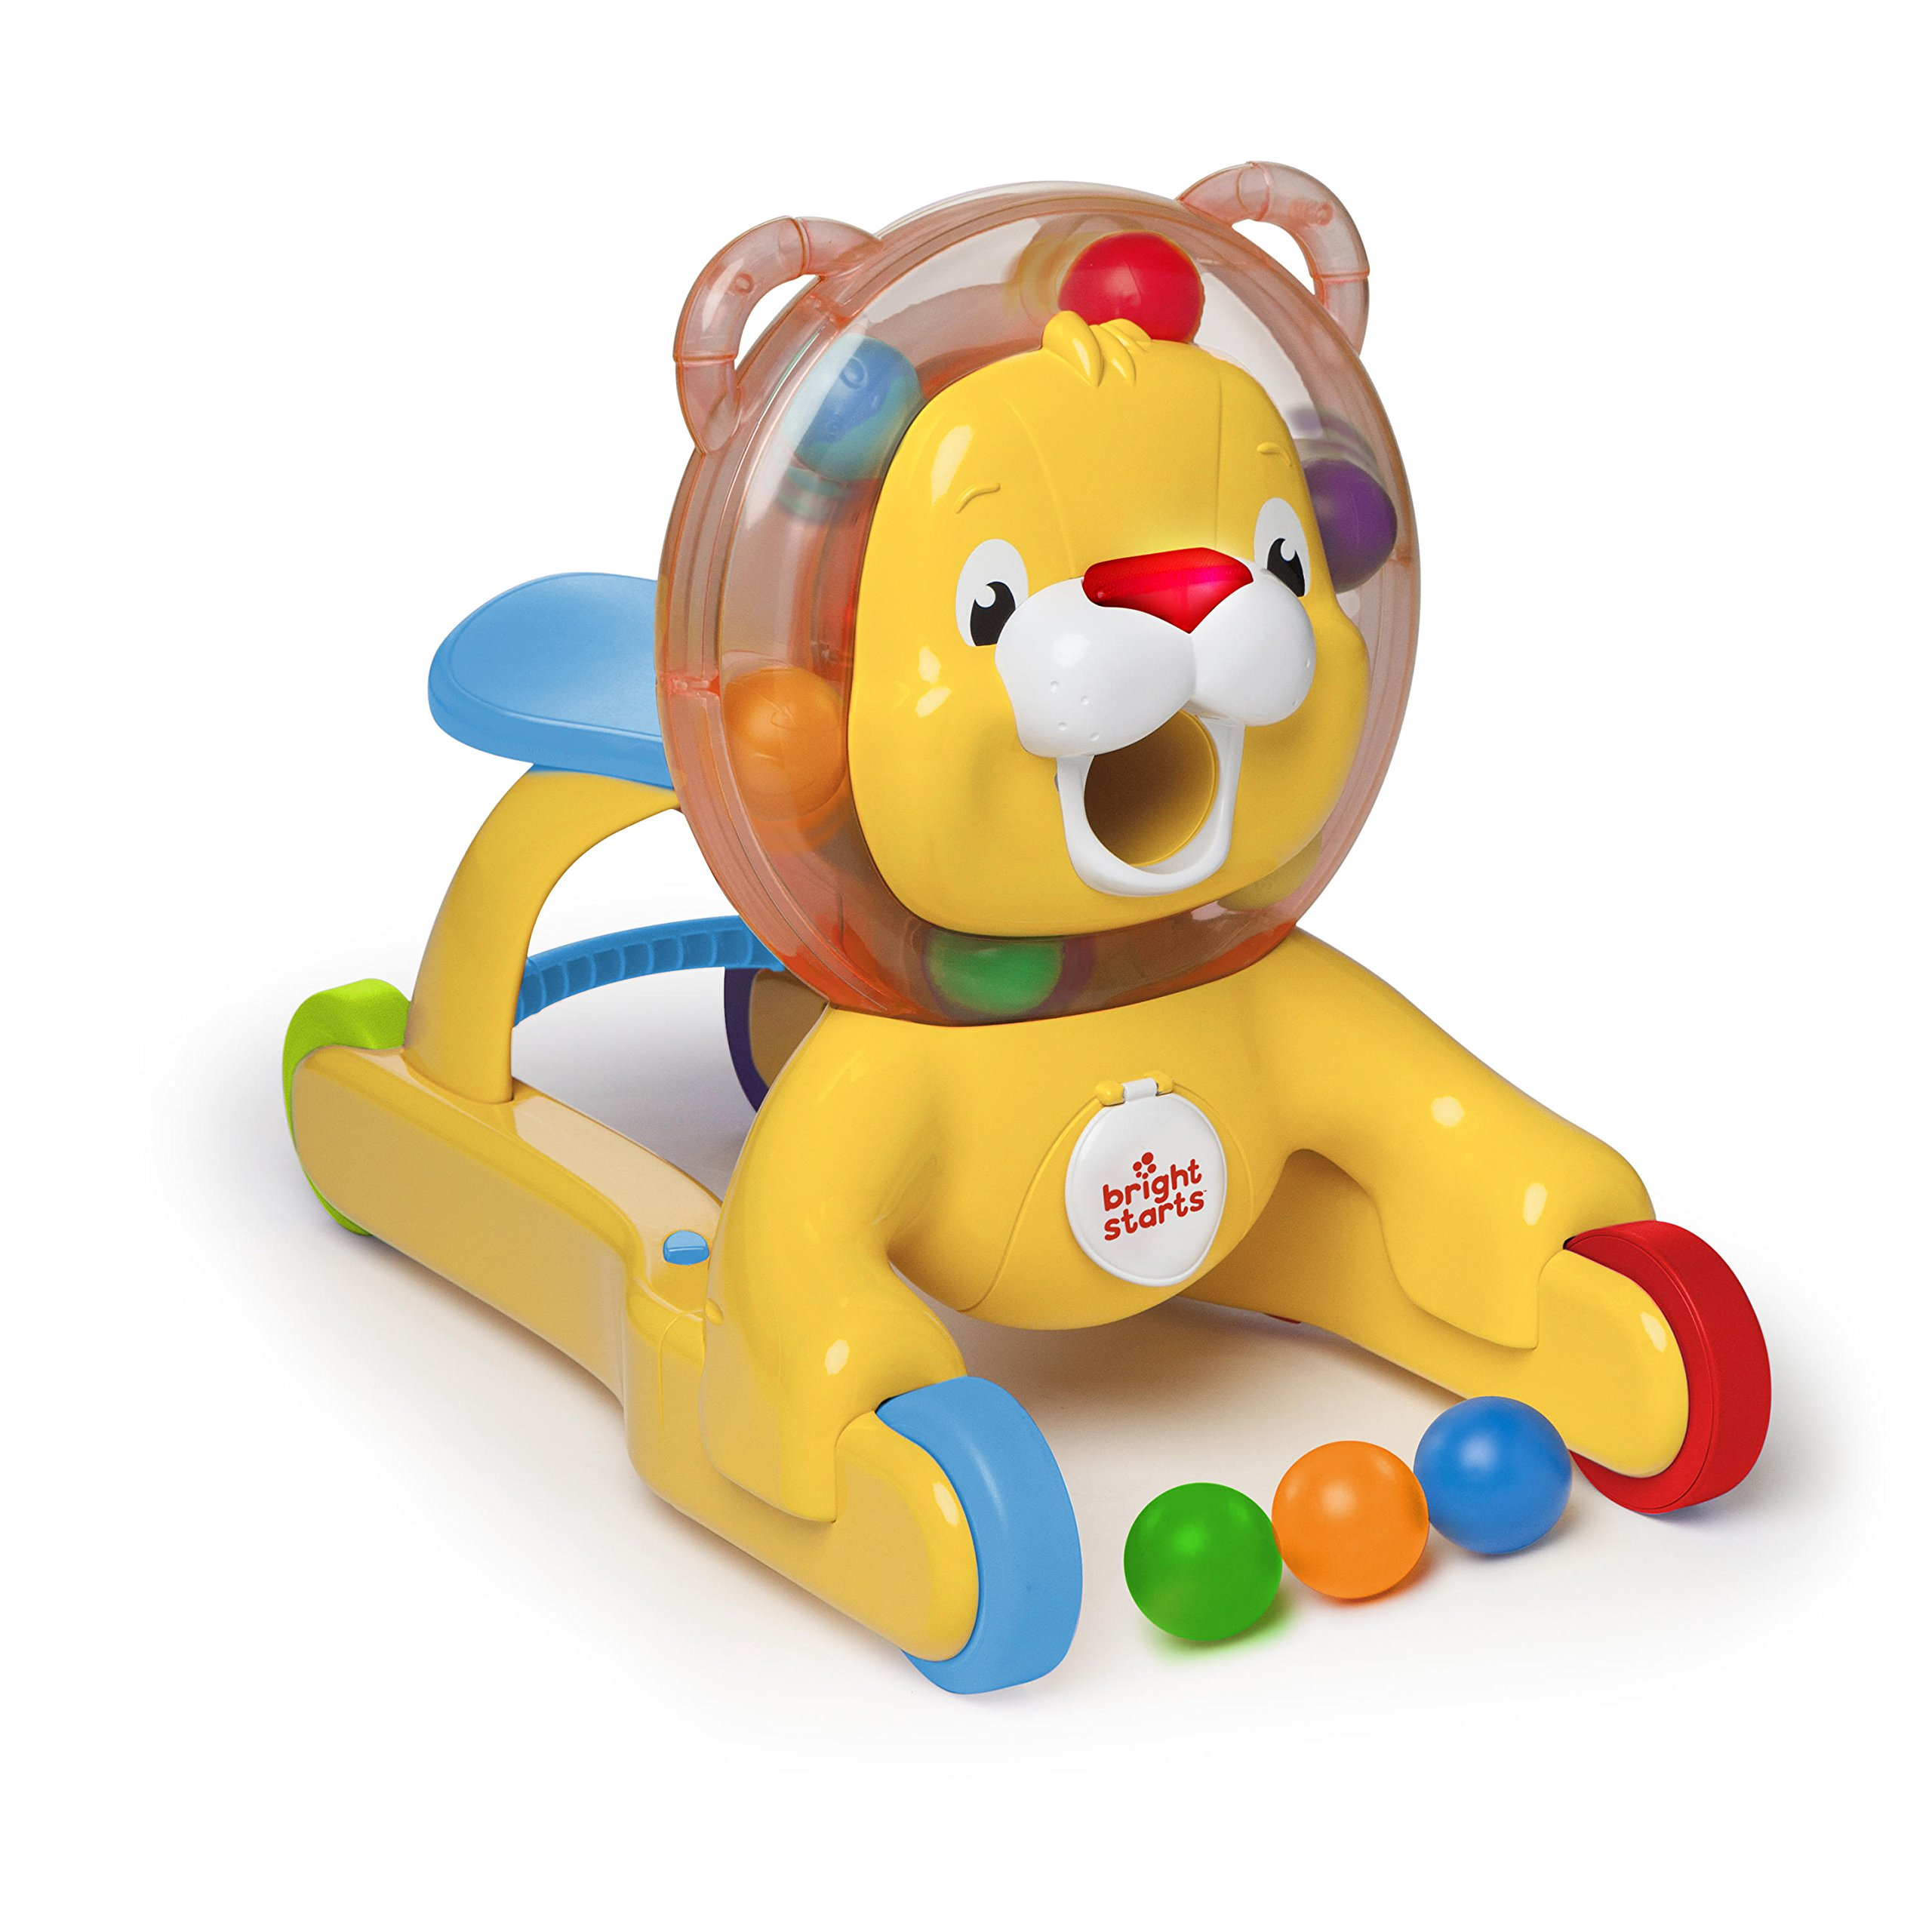 Bright Starts 3-in-1 Step 'n Ride Lion with Lights, Music and Sounds